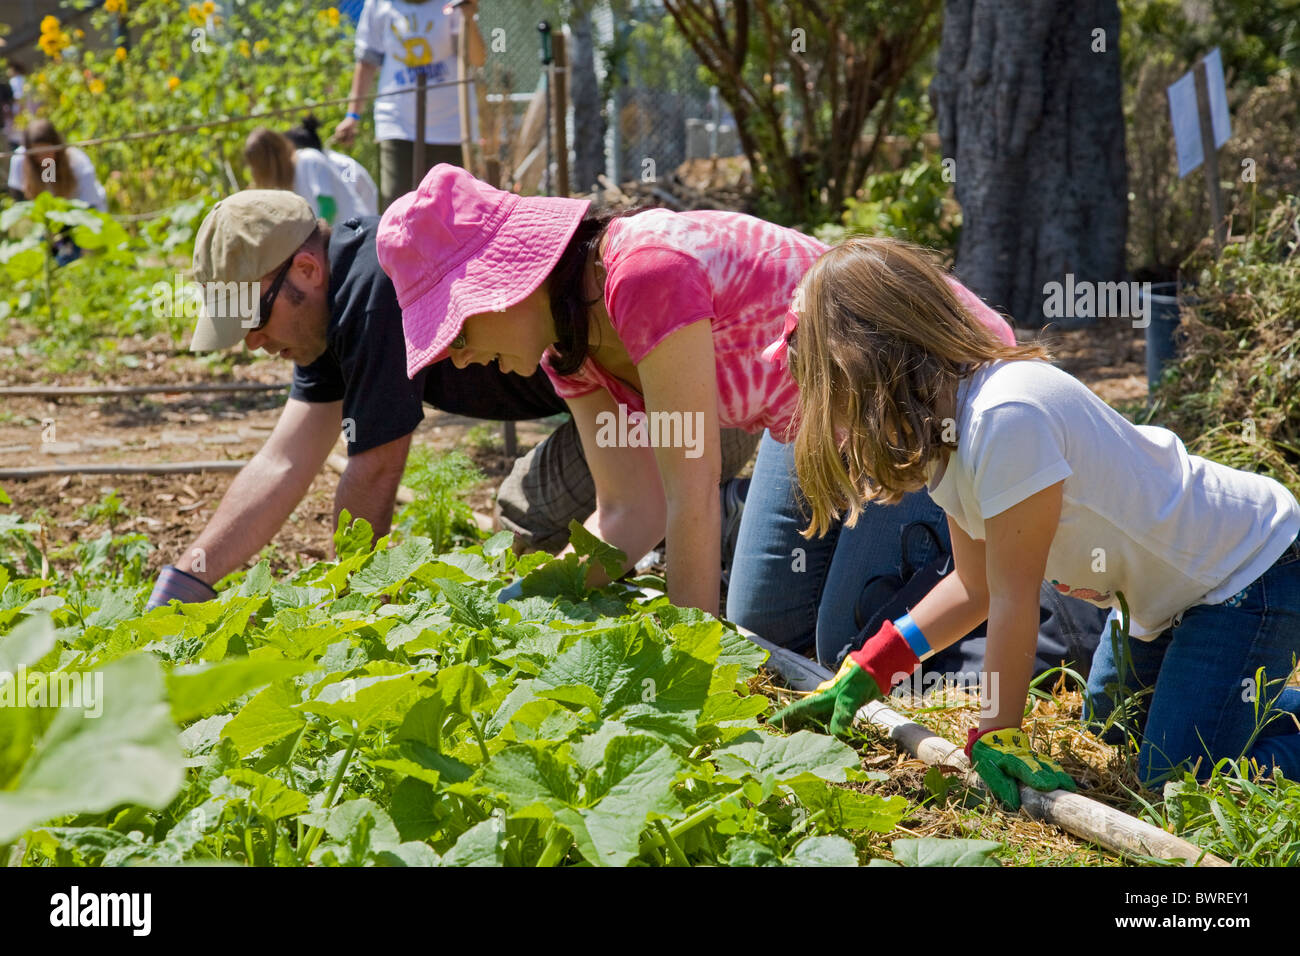 Students, parents and teachers work on the garden at the 24th Street School garden on Big Sunday. West Adams, Los - Stock Image